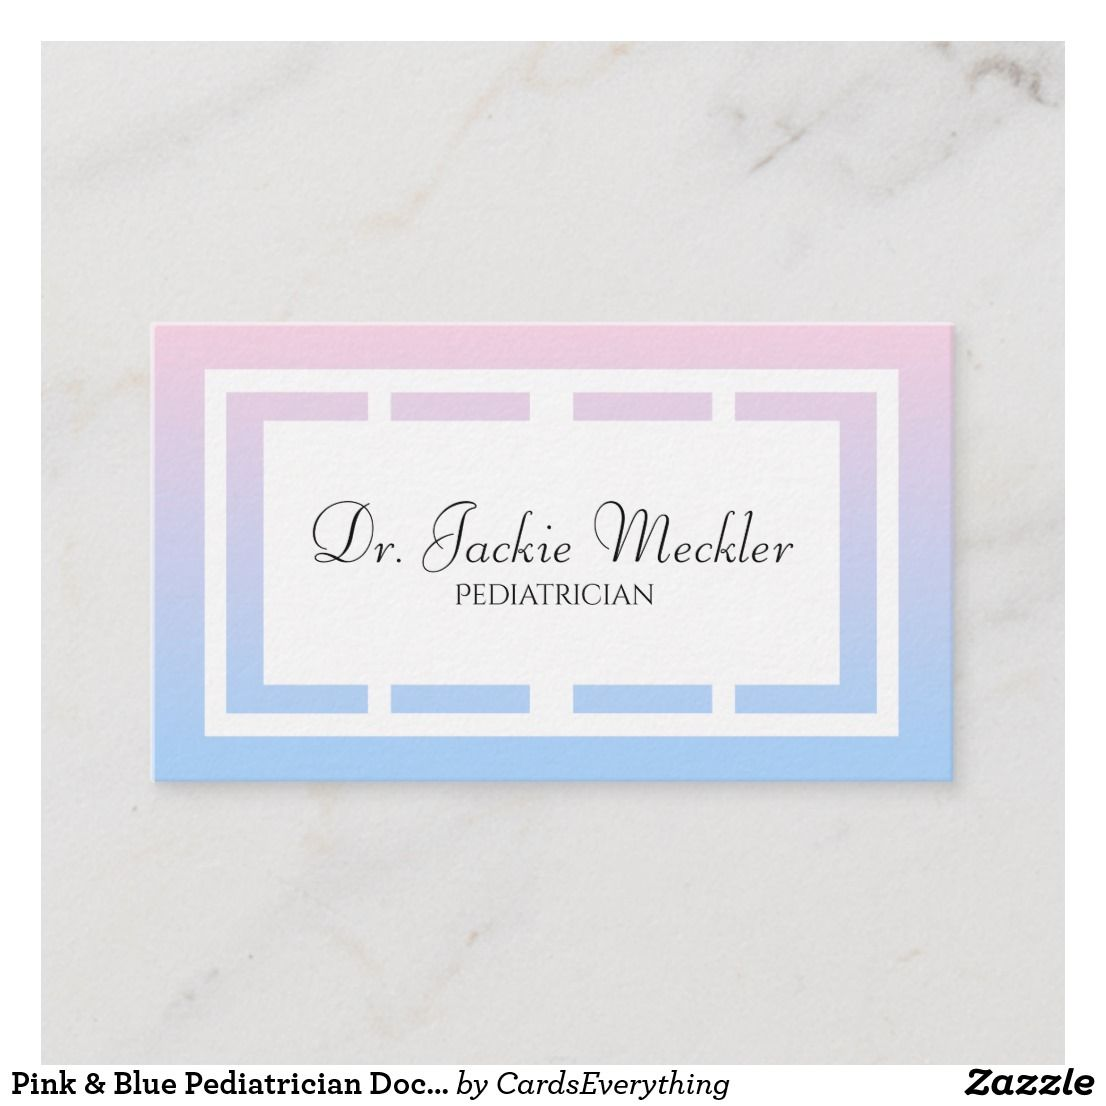 Pink Blue Pediatrician Doctor Business Card Zazzle Com Doctor Business Cards Business Card Design Business Cards